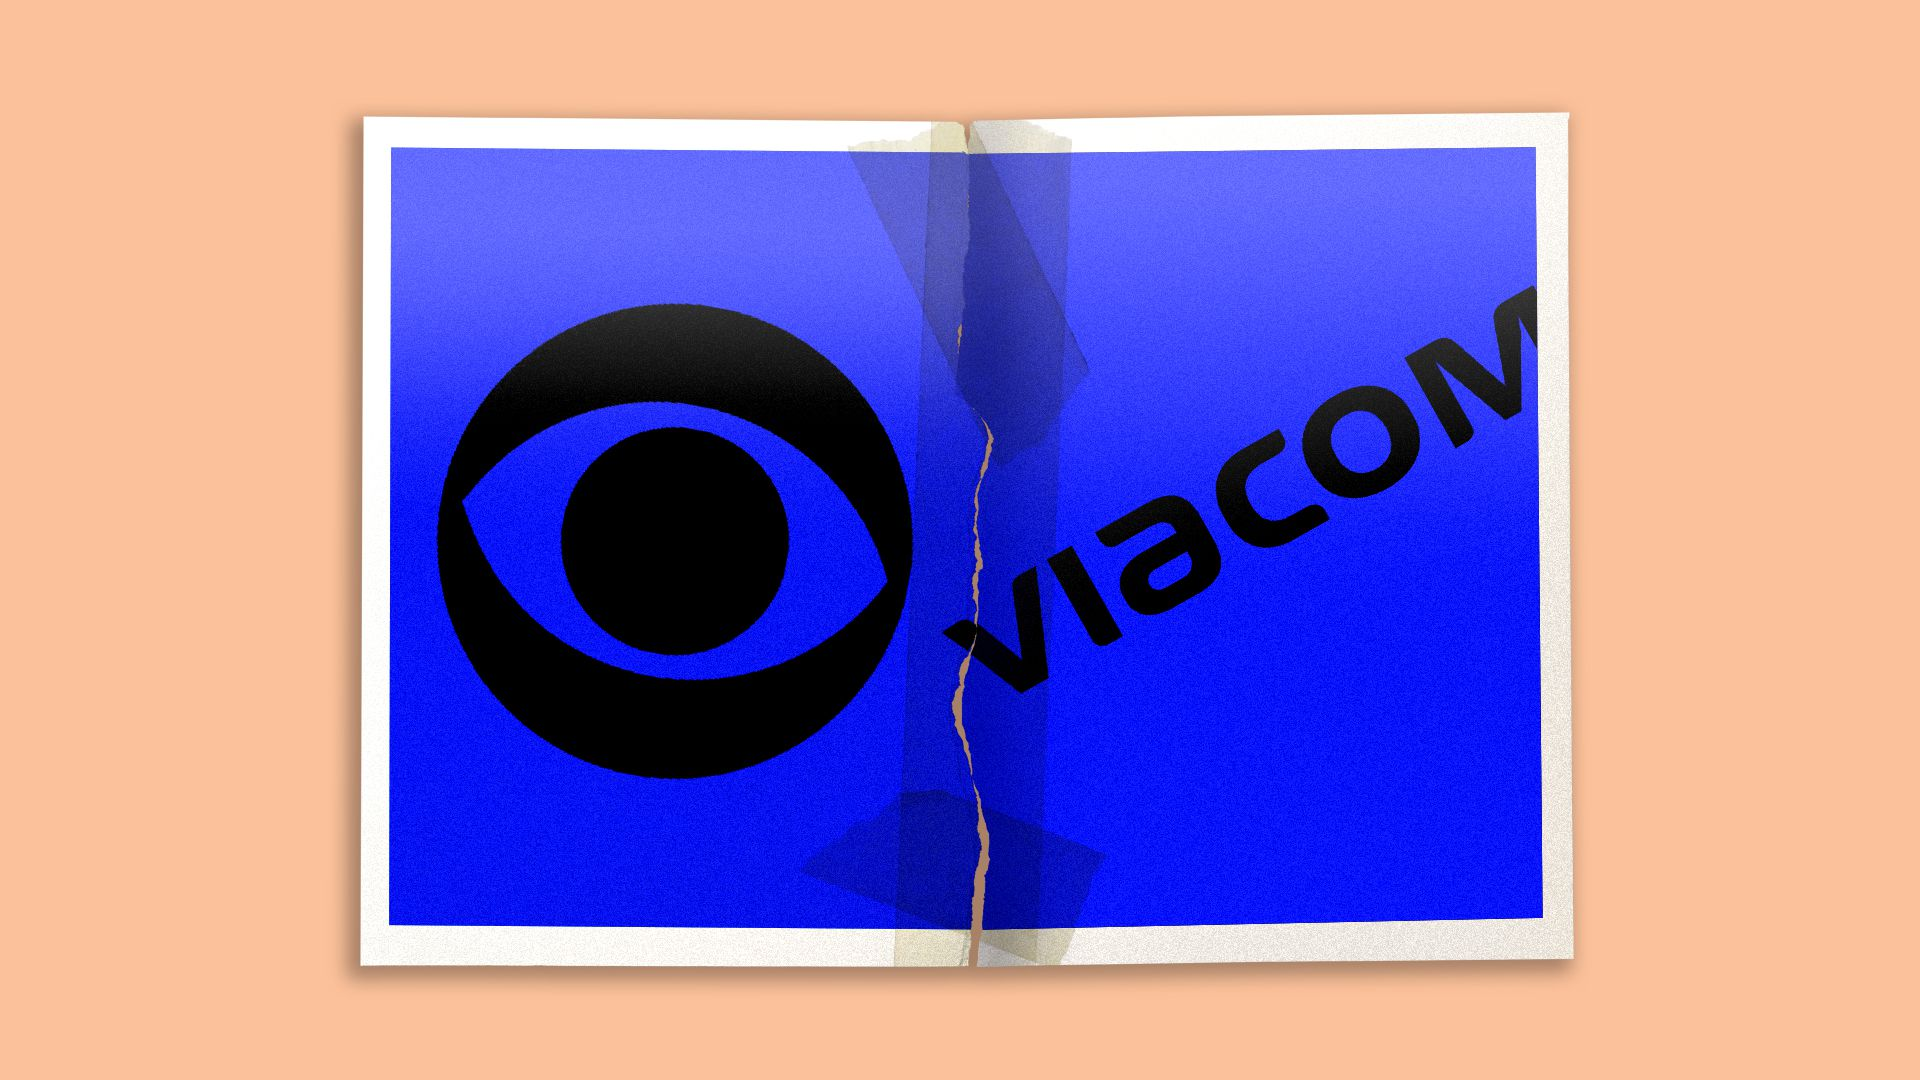 Illustration of a torn apart and taped back together photo of the CBS and Viacom logos.